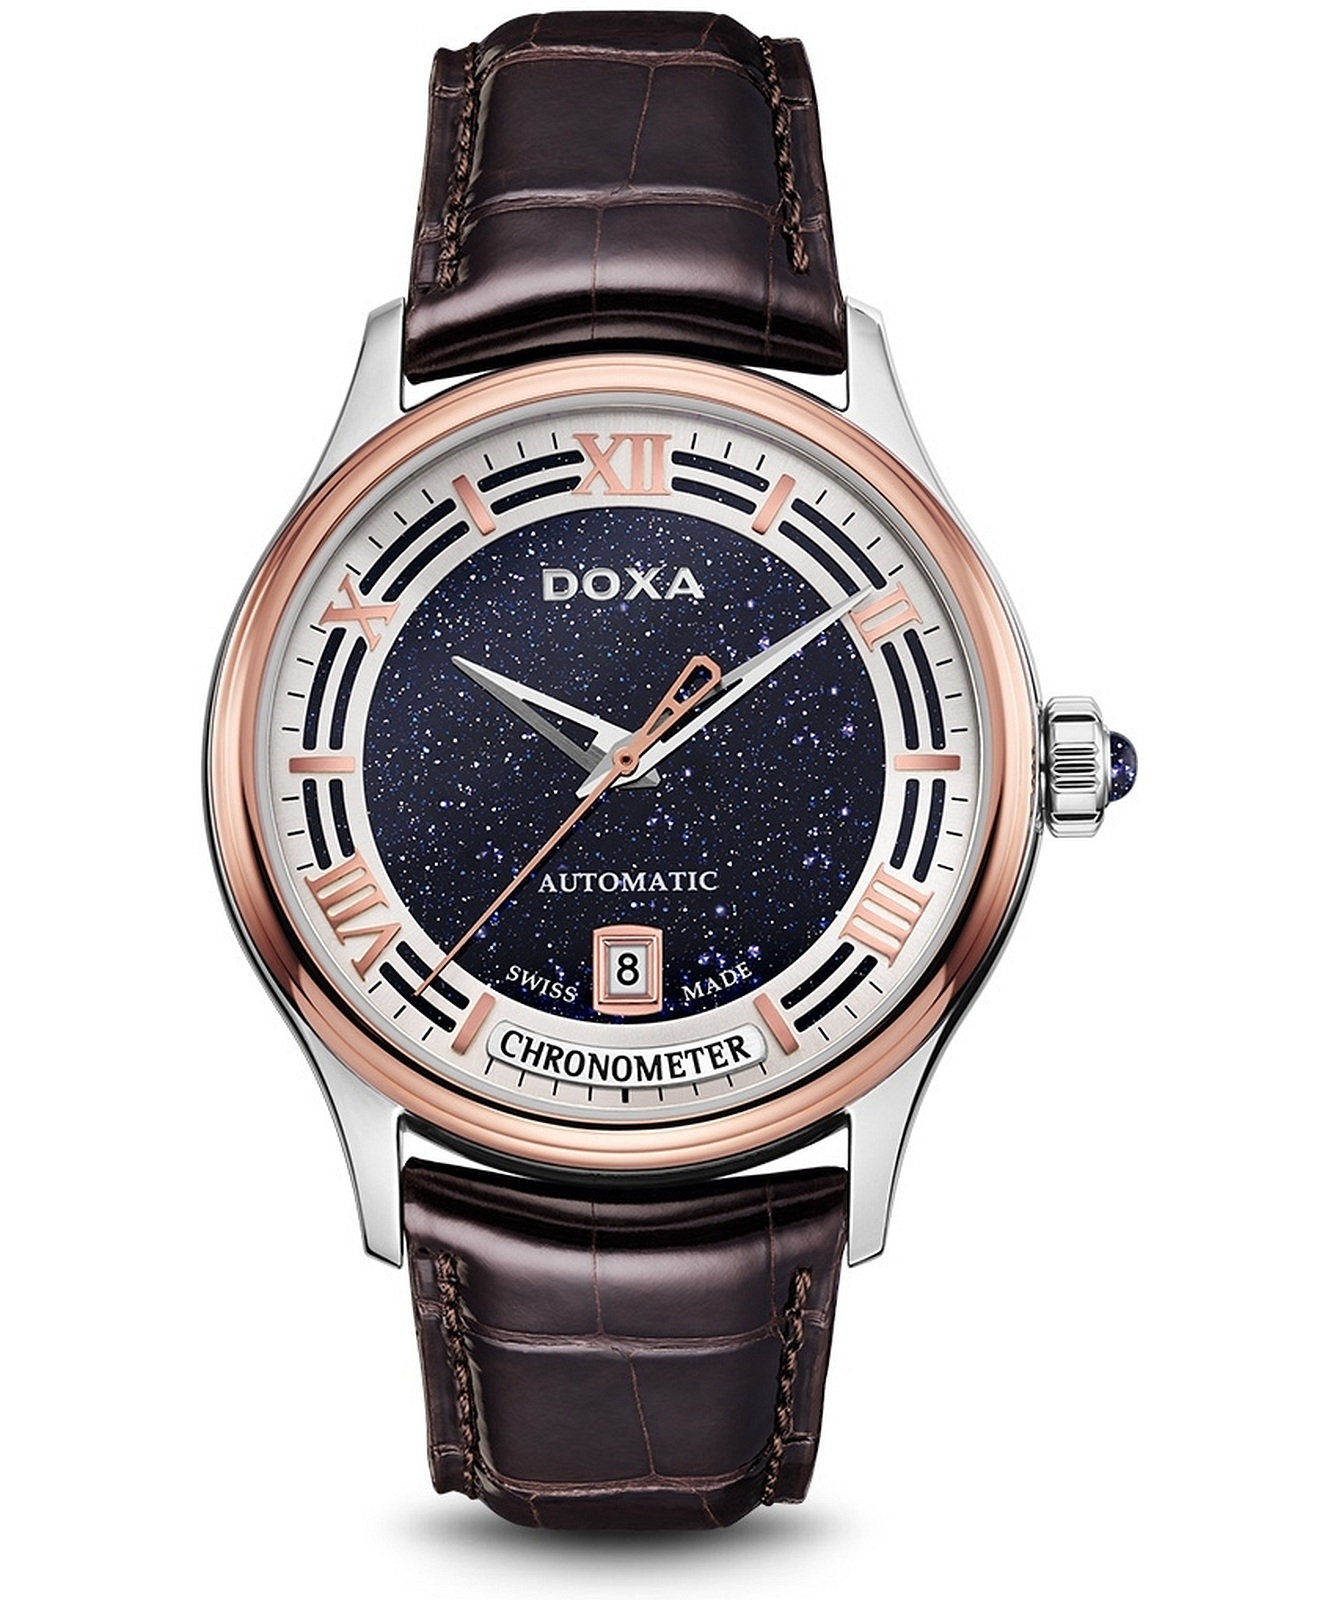 zegarek-meski-doxa-blue-planet-automatic-chronometer-limited-edition-d198rbu_001.jpg